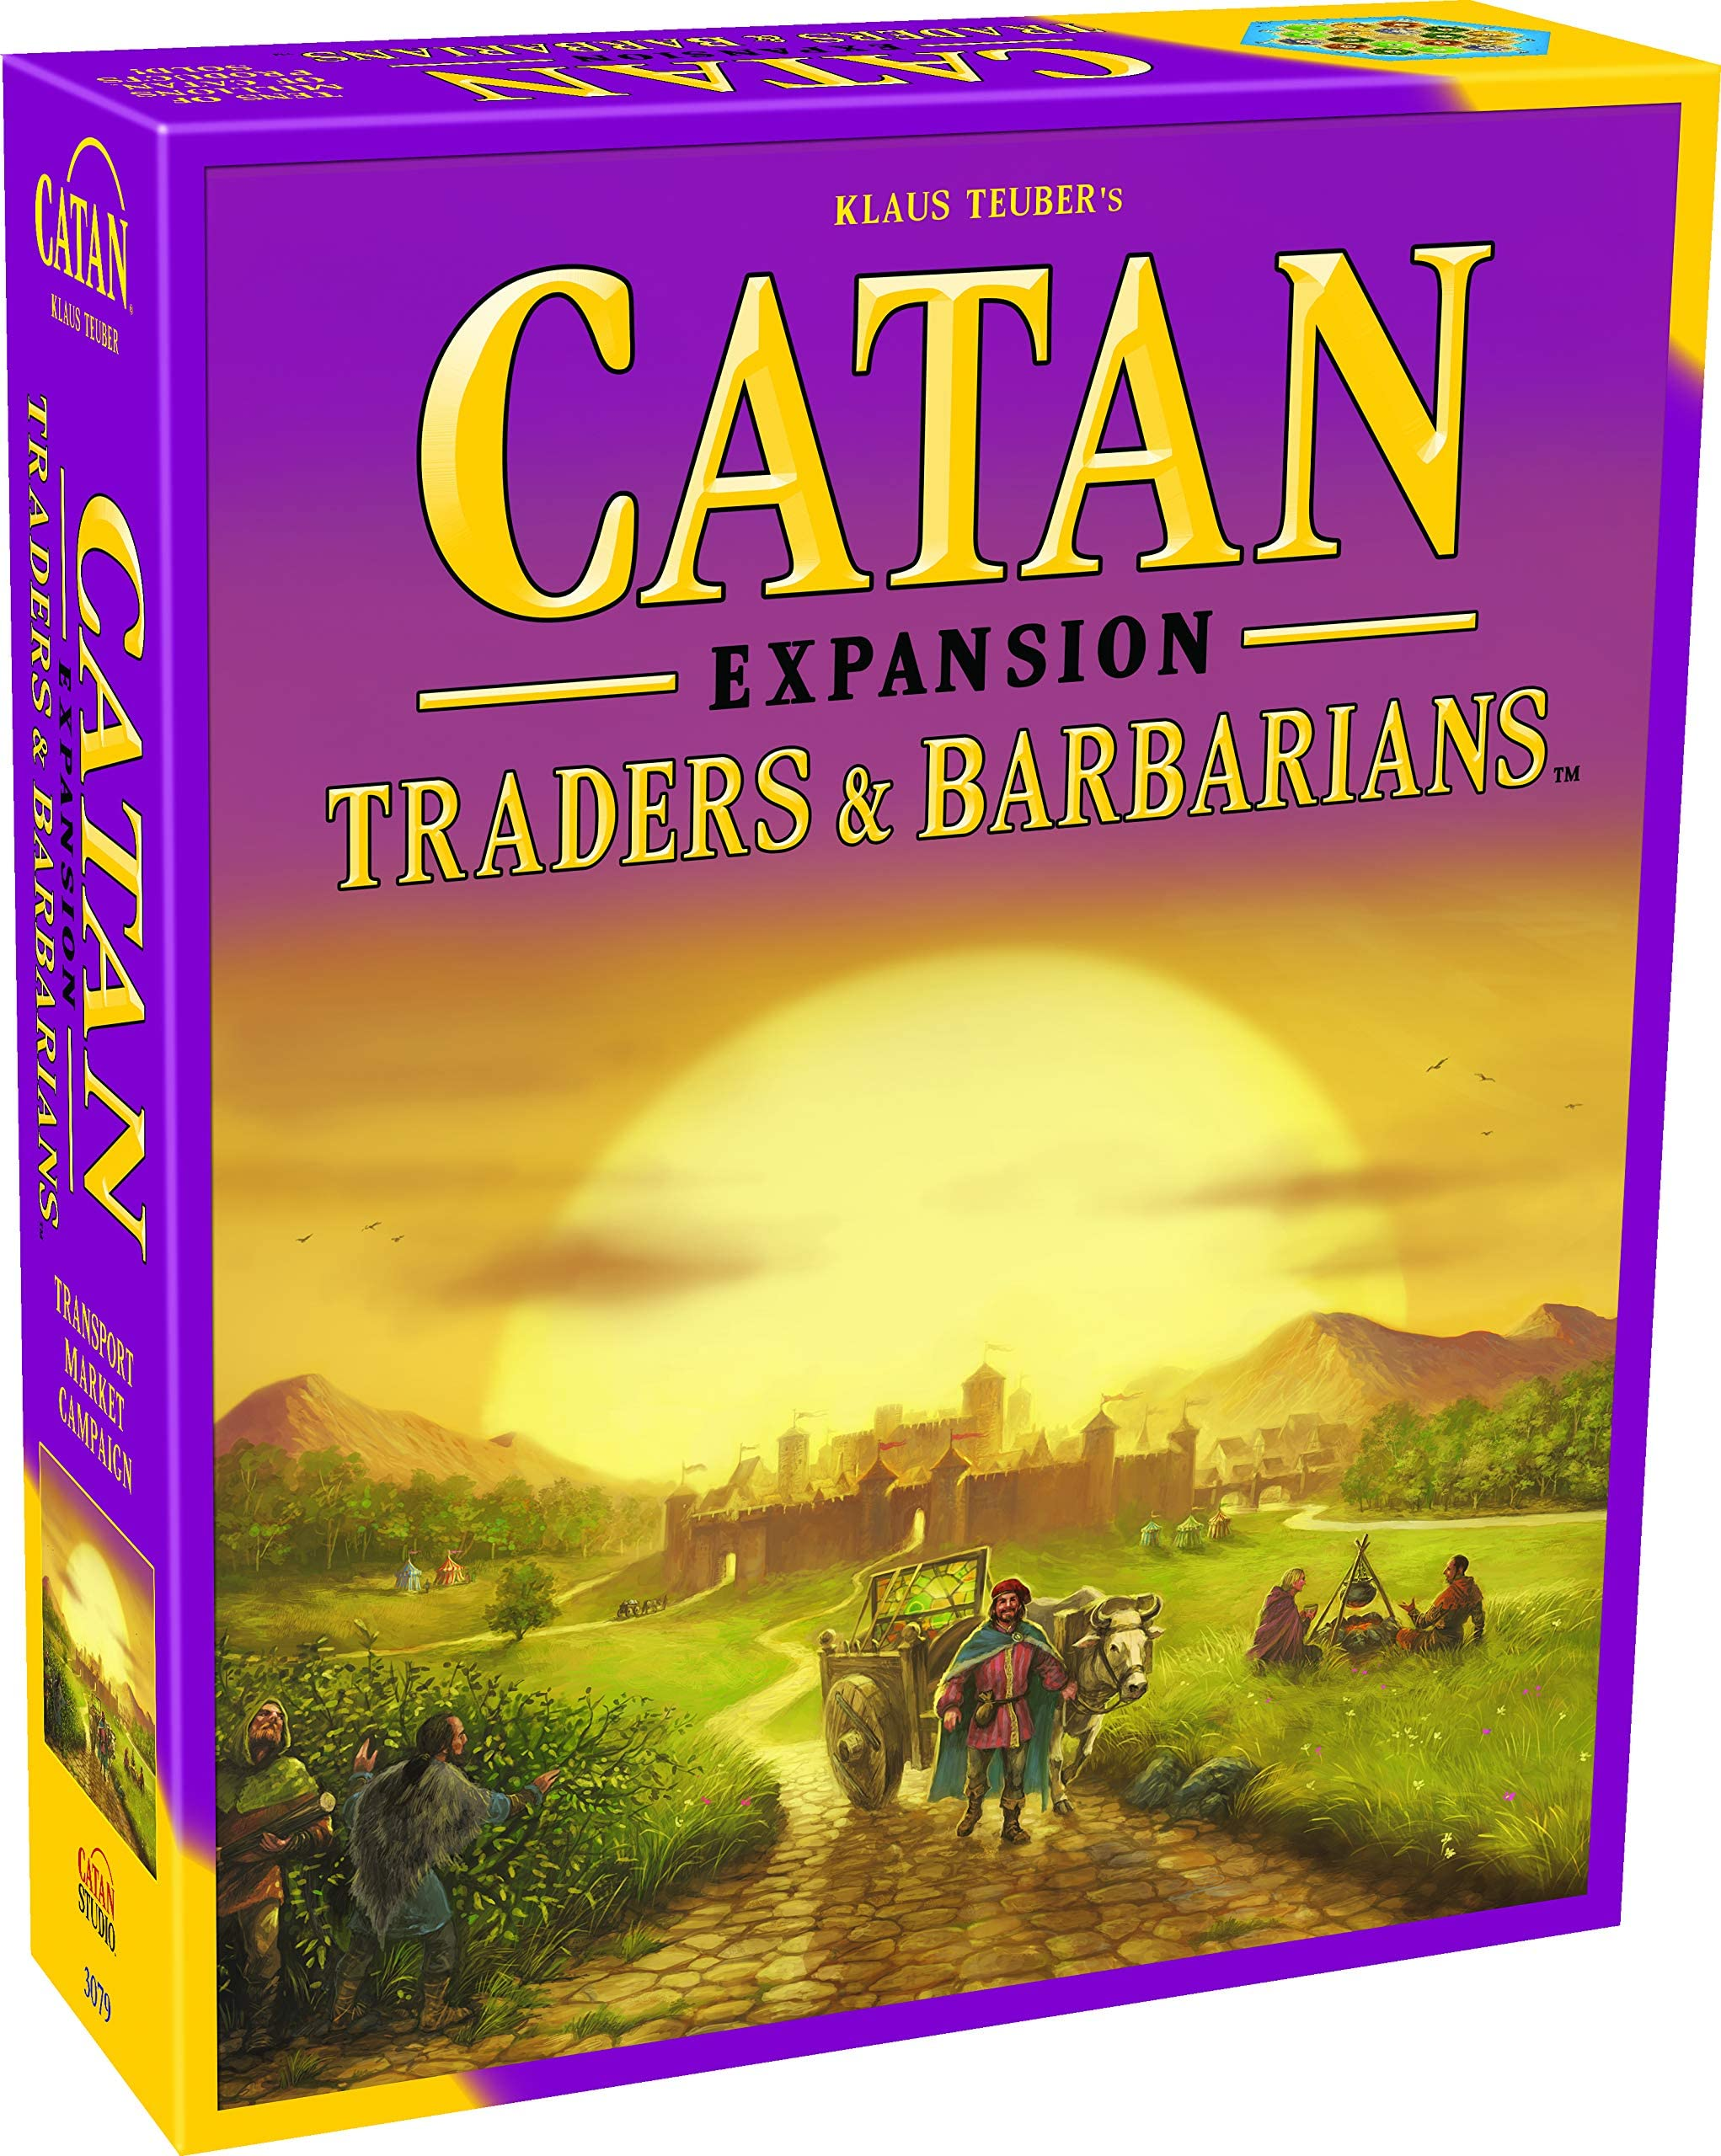 Catan Traders and Barbarians Board Game Expansion | Board Game for Adults and Family | Adventure Board Game | Ages 12+ | for 3 to 4 Players | Average Playtime 90 Minutes | Made by Catan Studio